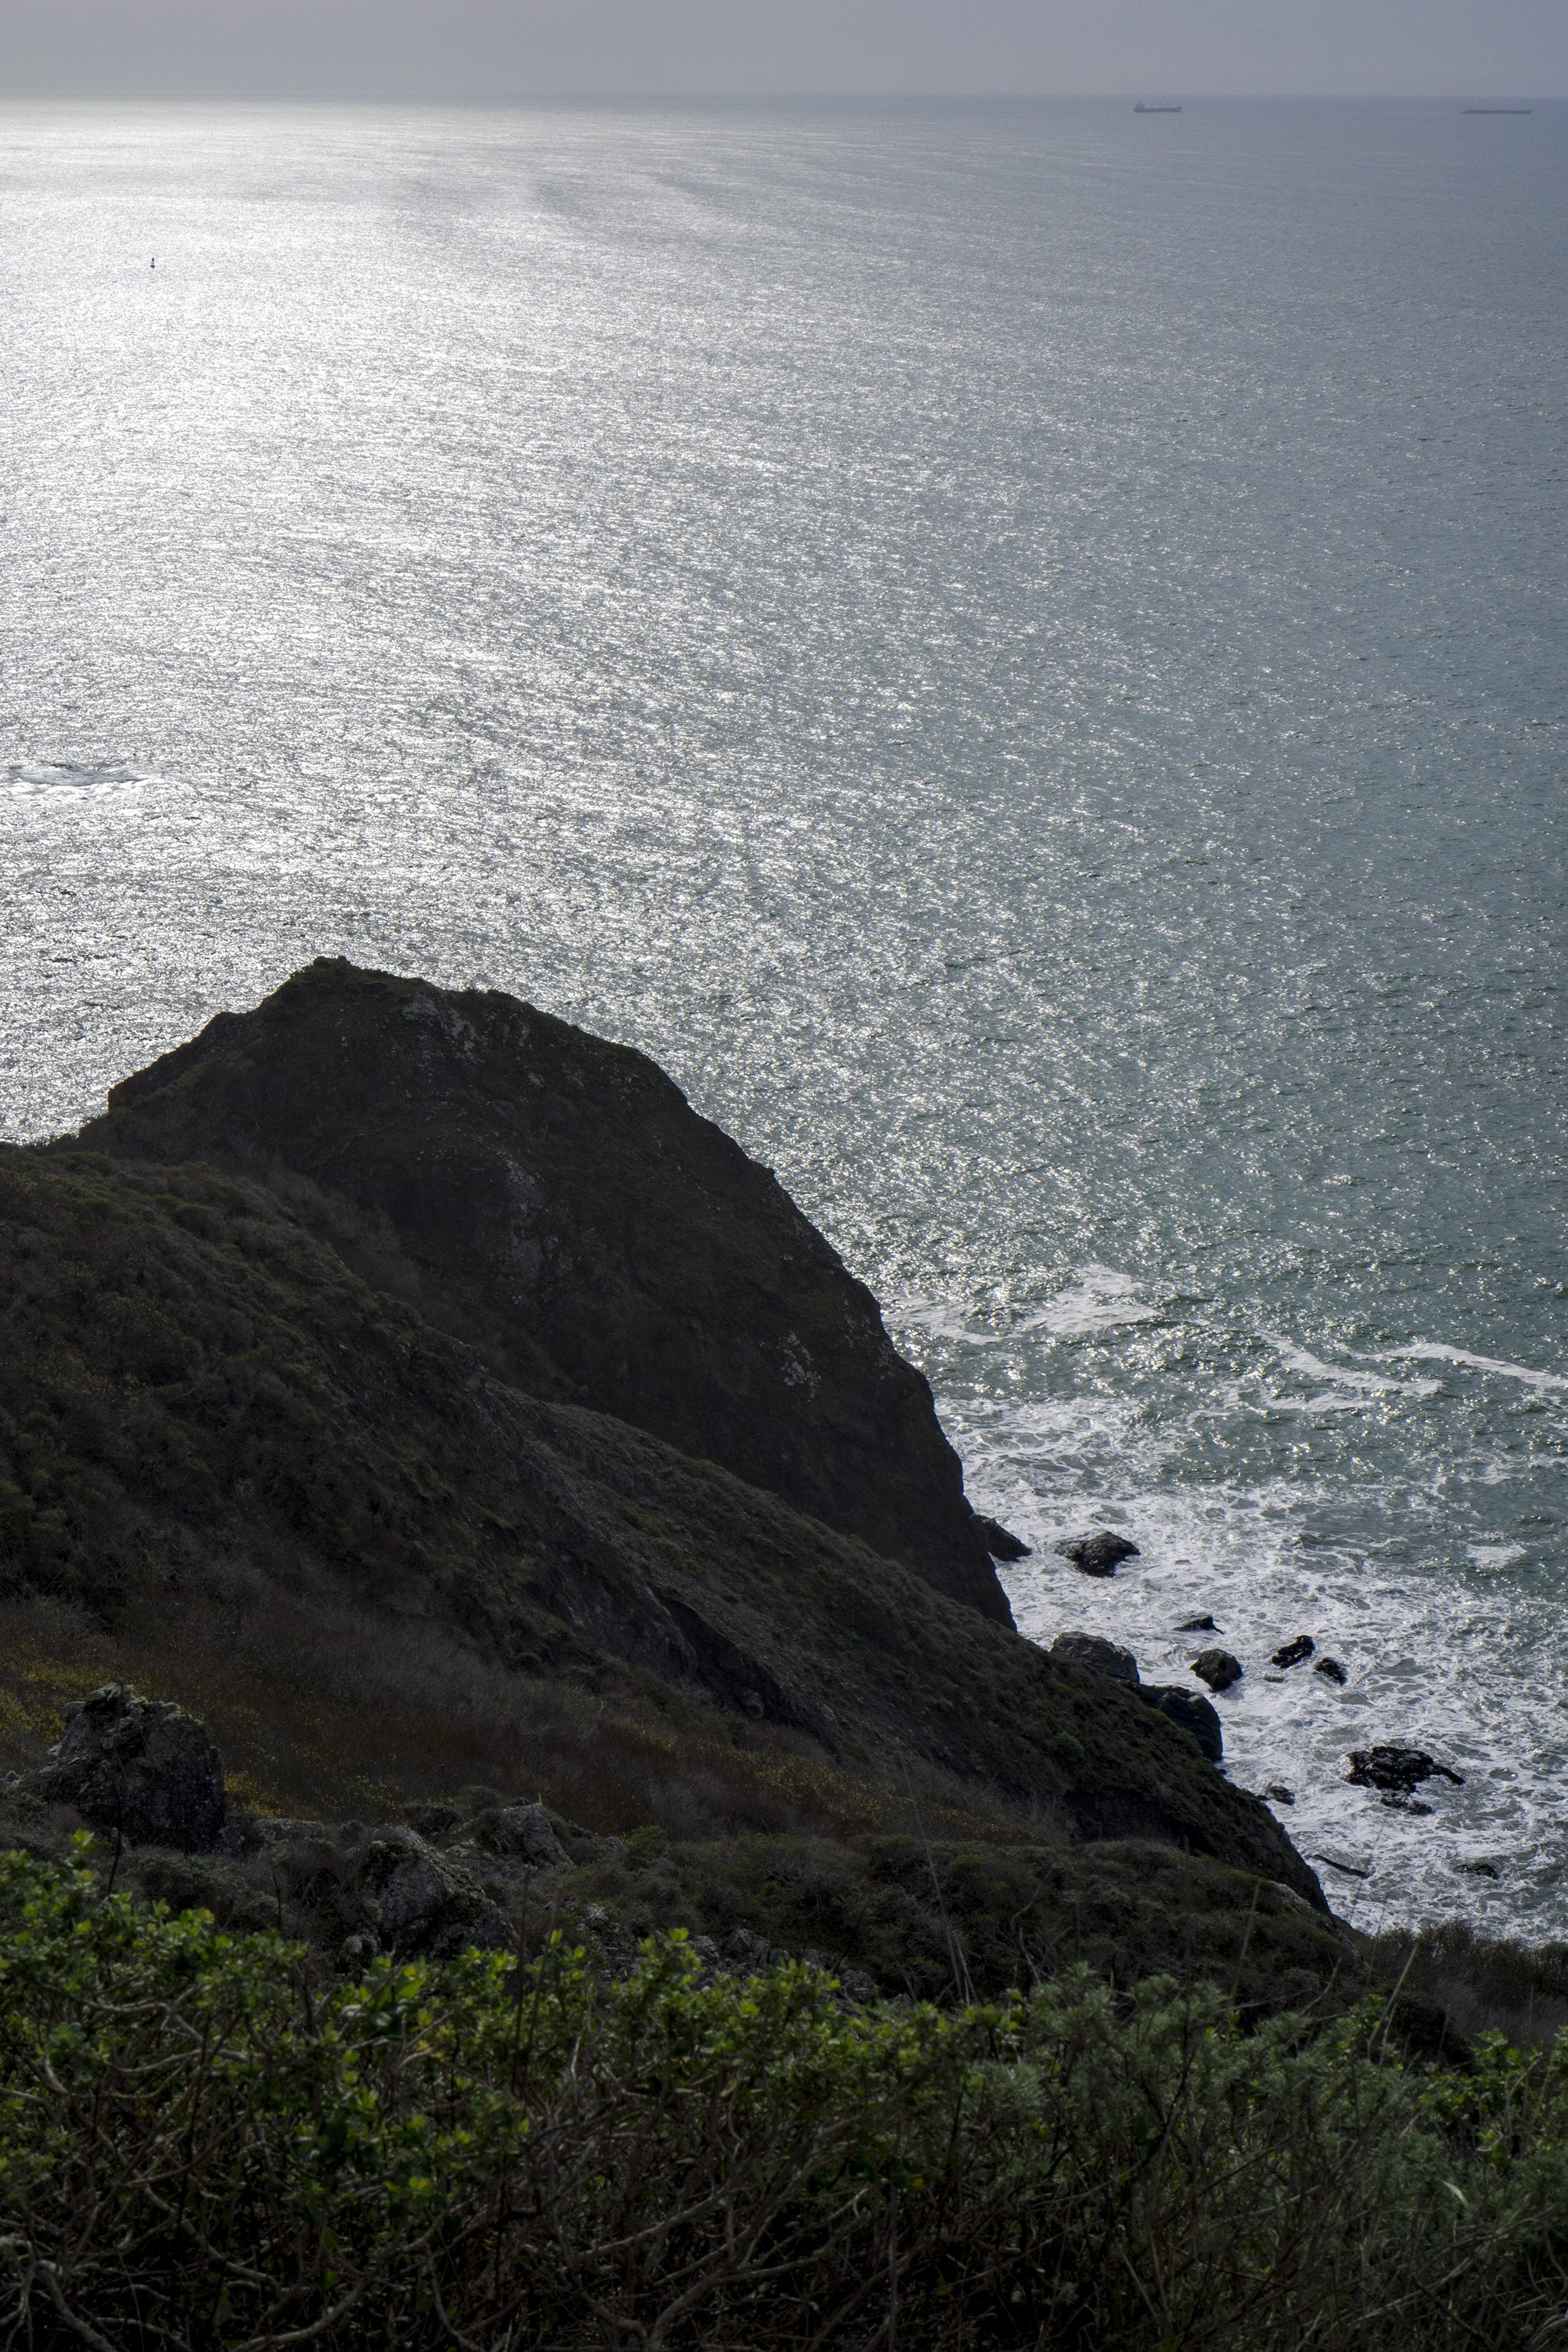 Pacific Ocean from Tennessee Valley Trail, Marin Headlands, Golden Gate National Recreation Area / Darker than Green